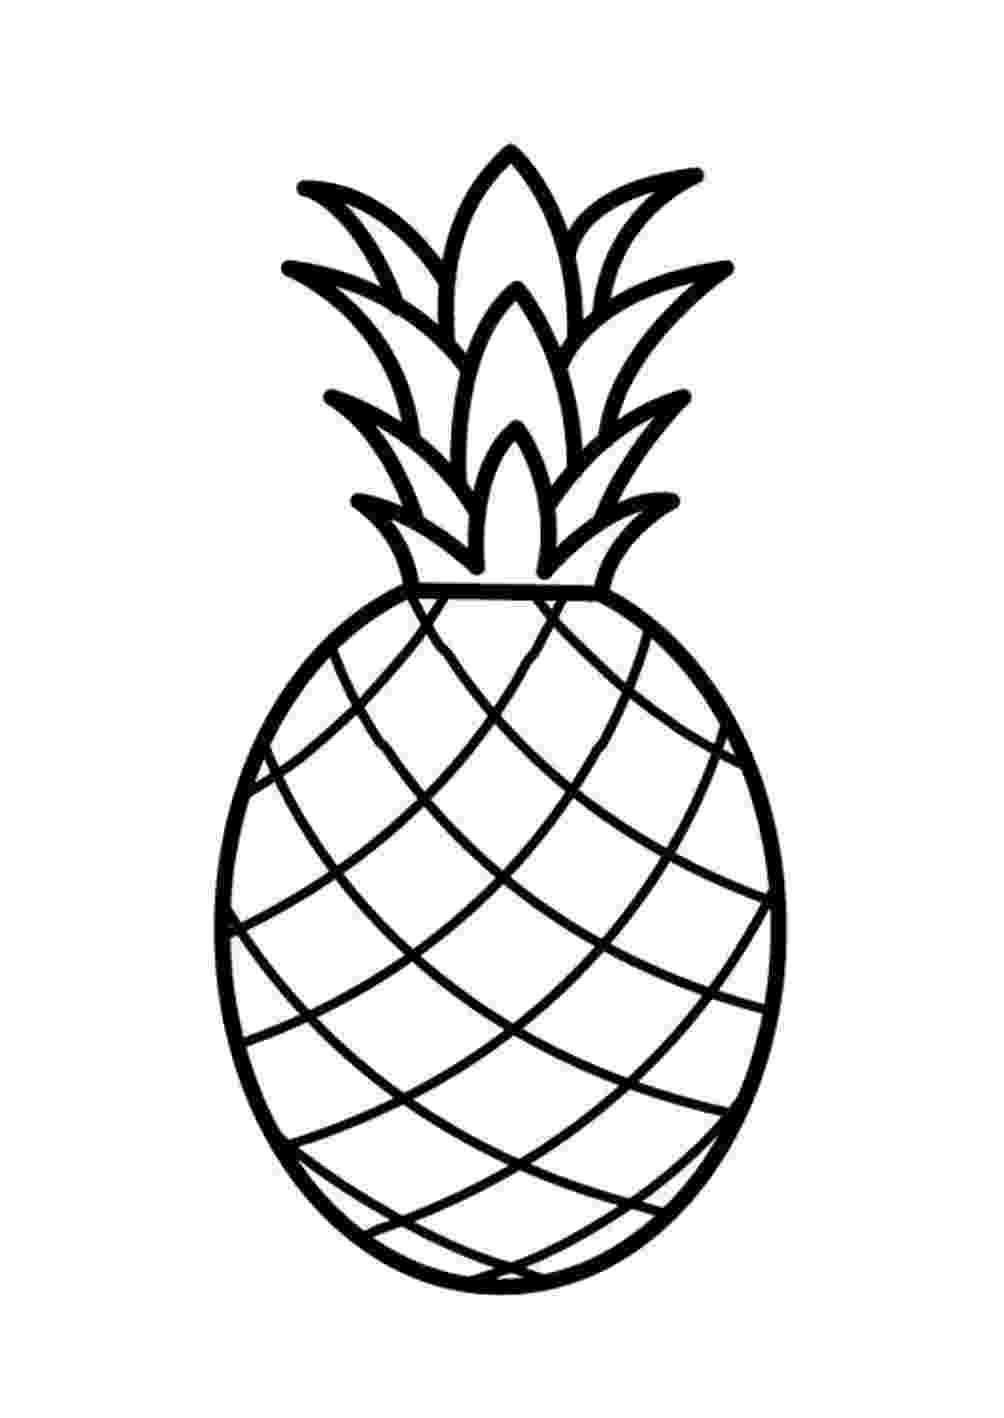 picture of fruits for colouring fruit coloring pages for childrens printable for free picture for of colouring fruits